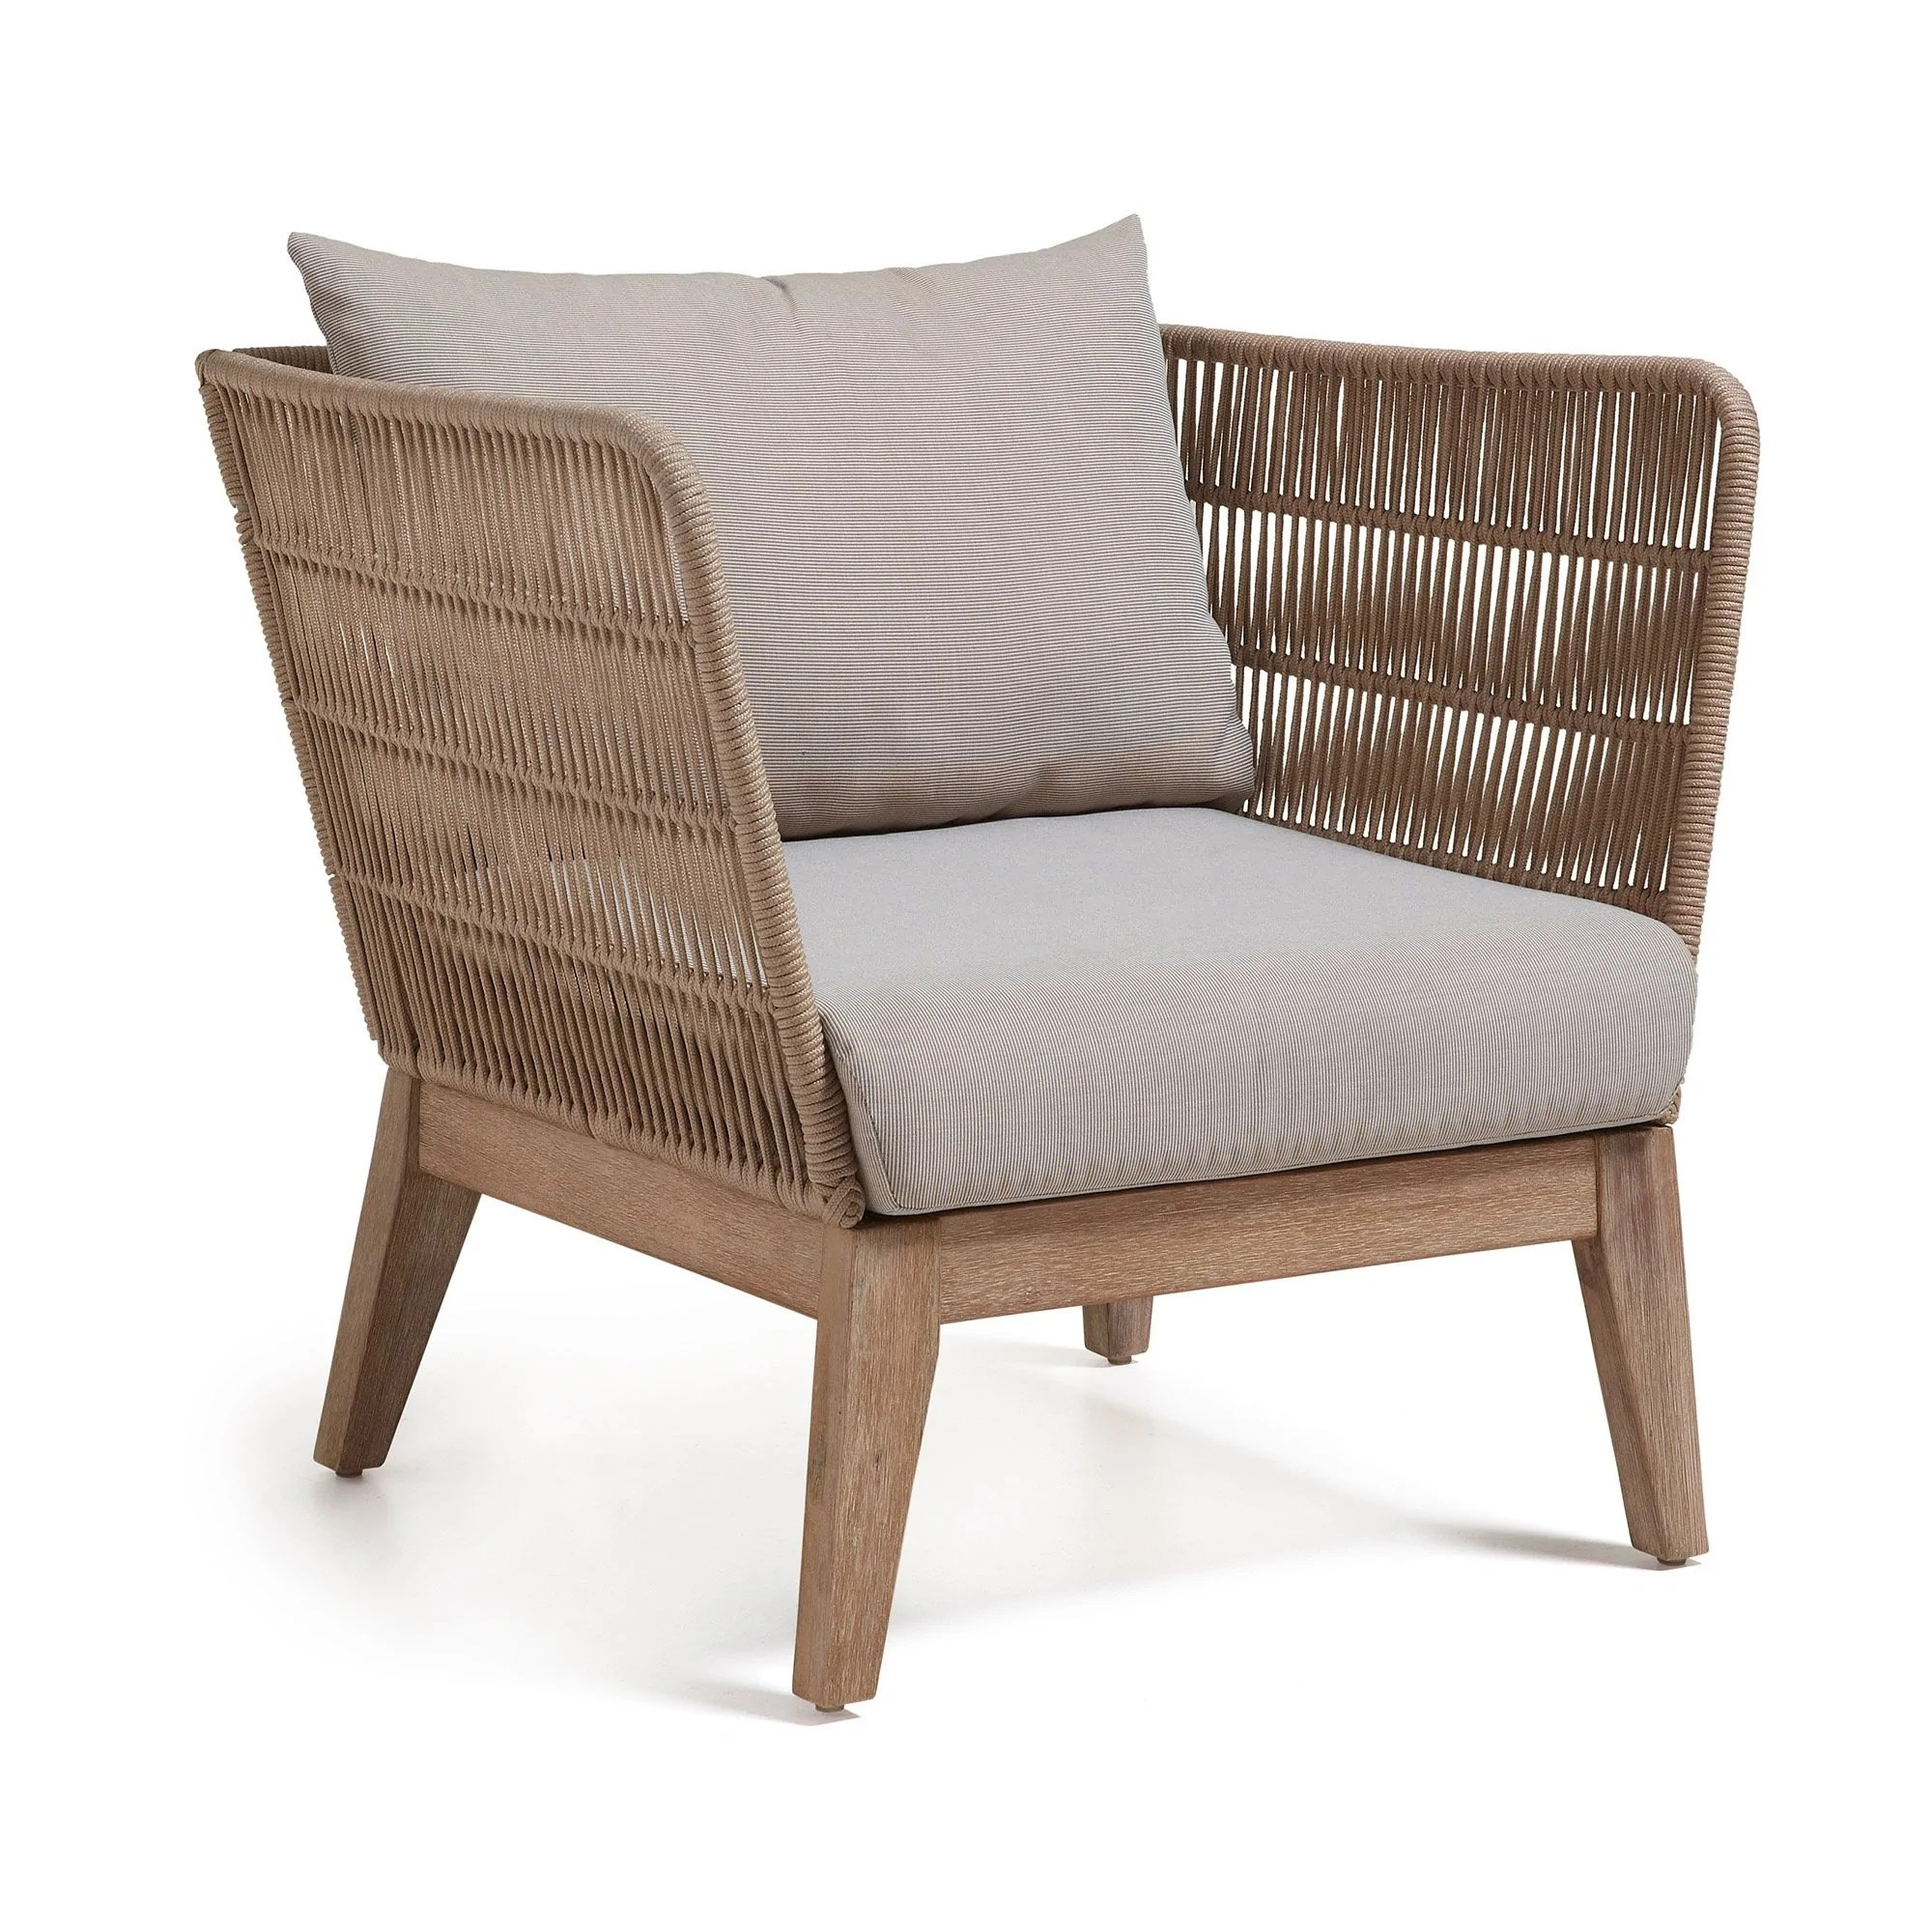 Loungechair Outdoor Stuhl Rattan Style Sessel Wuud Interior